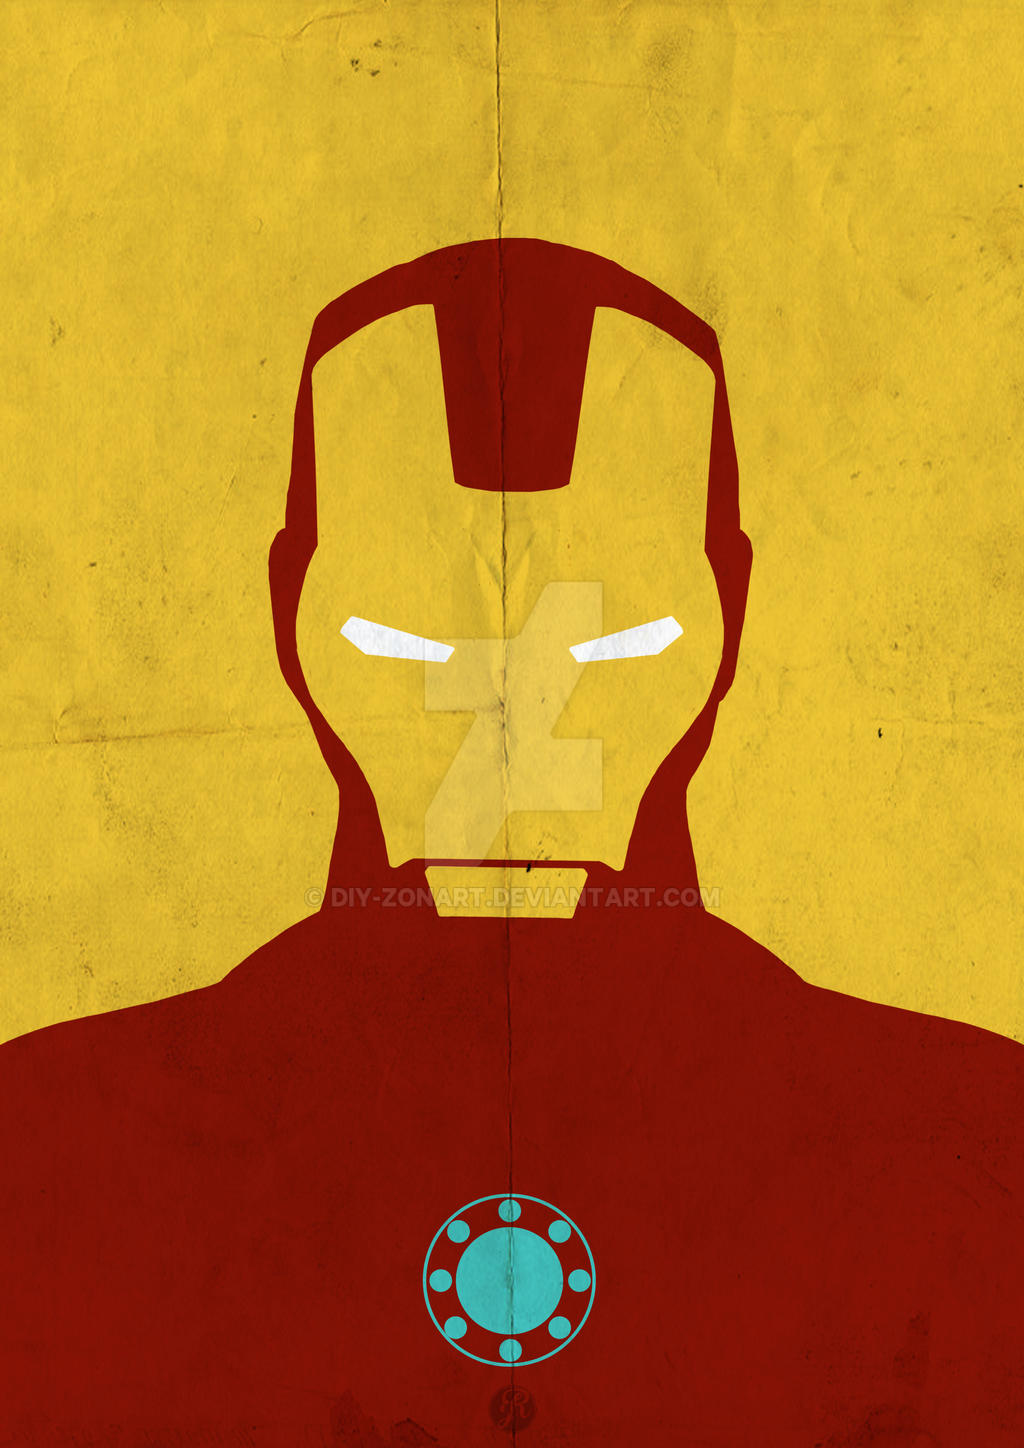 Iron man minimalist by diy zonart on deviantart for Art minimal facebook